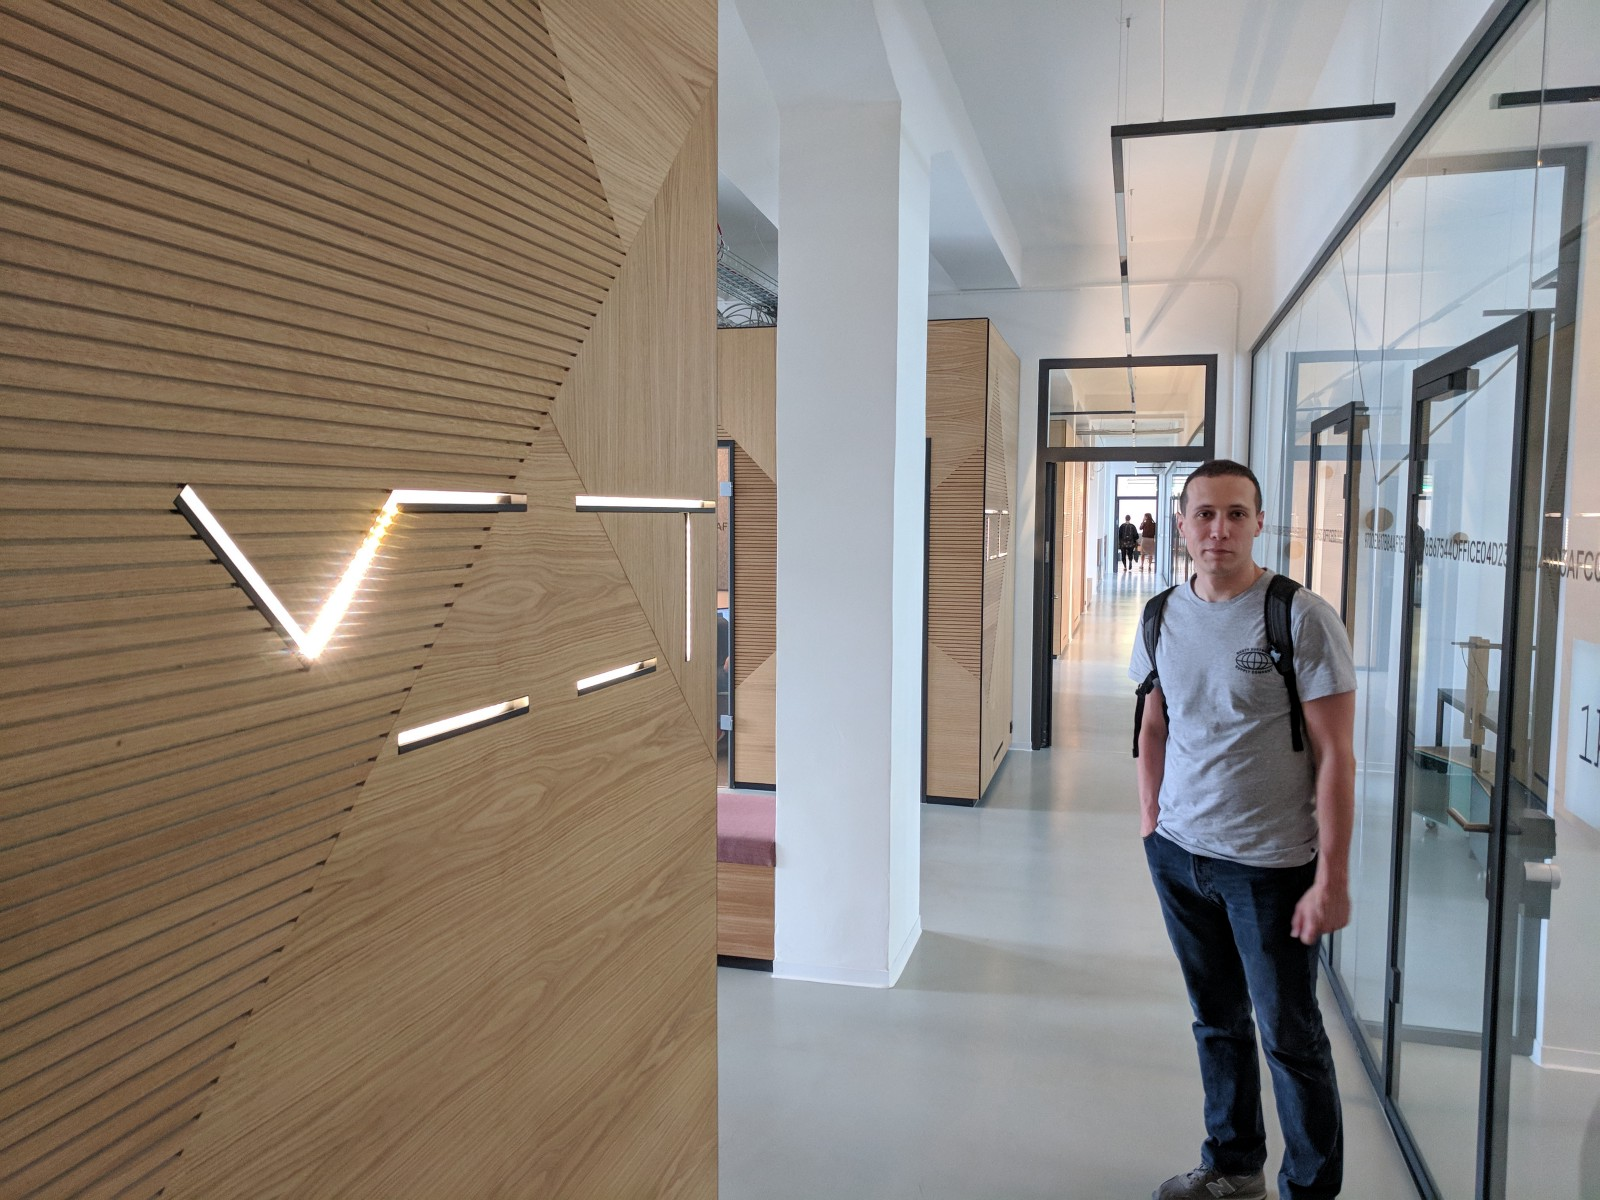 the place looks exactly like a hub for high tech companies should